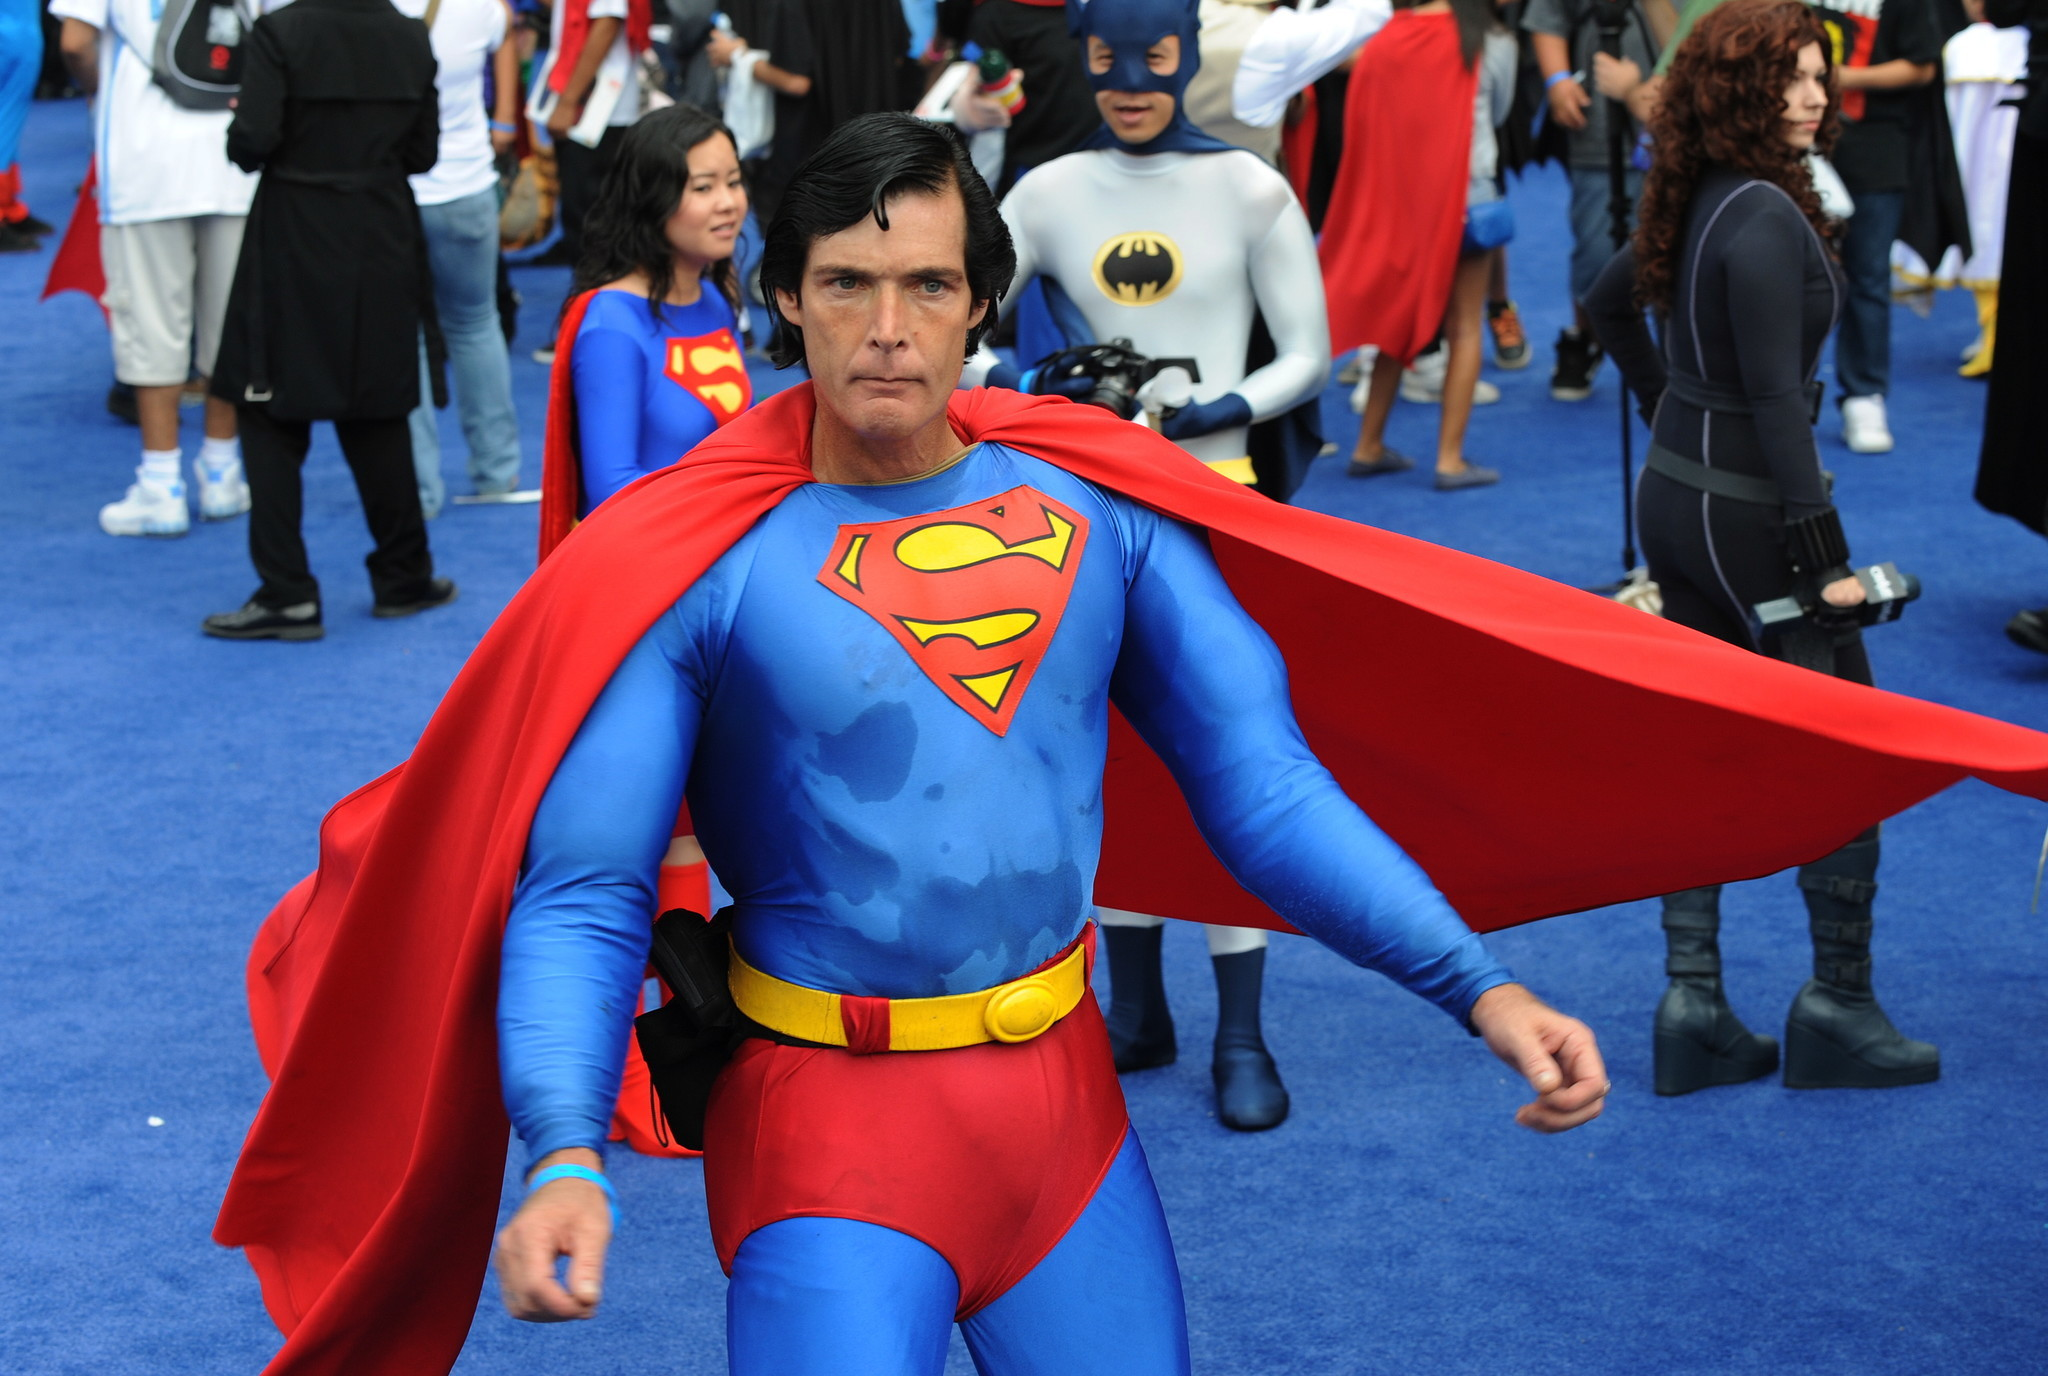 'Hollywood Superman' will be buried in his costume, thanks to anonymous donors